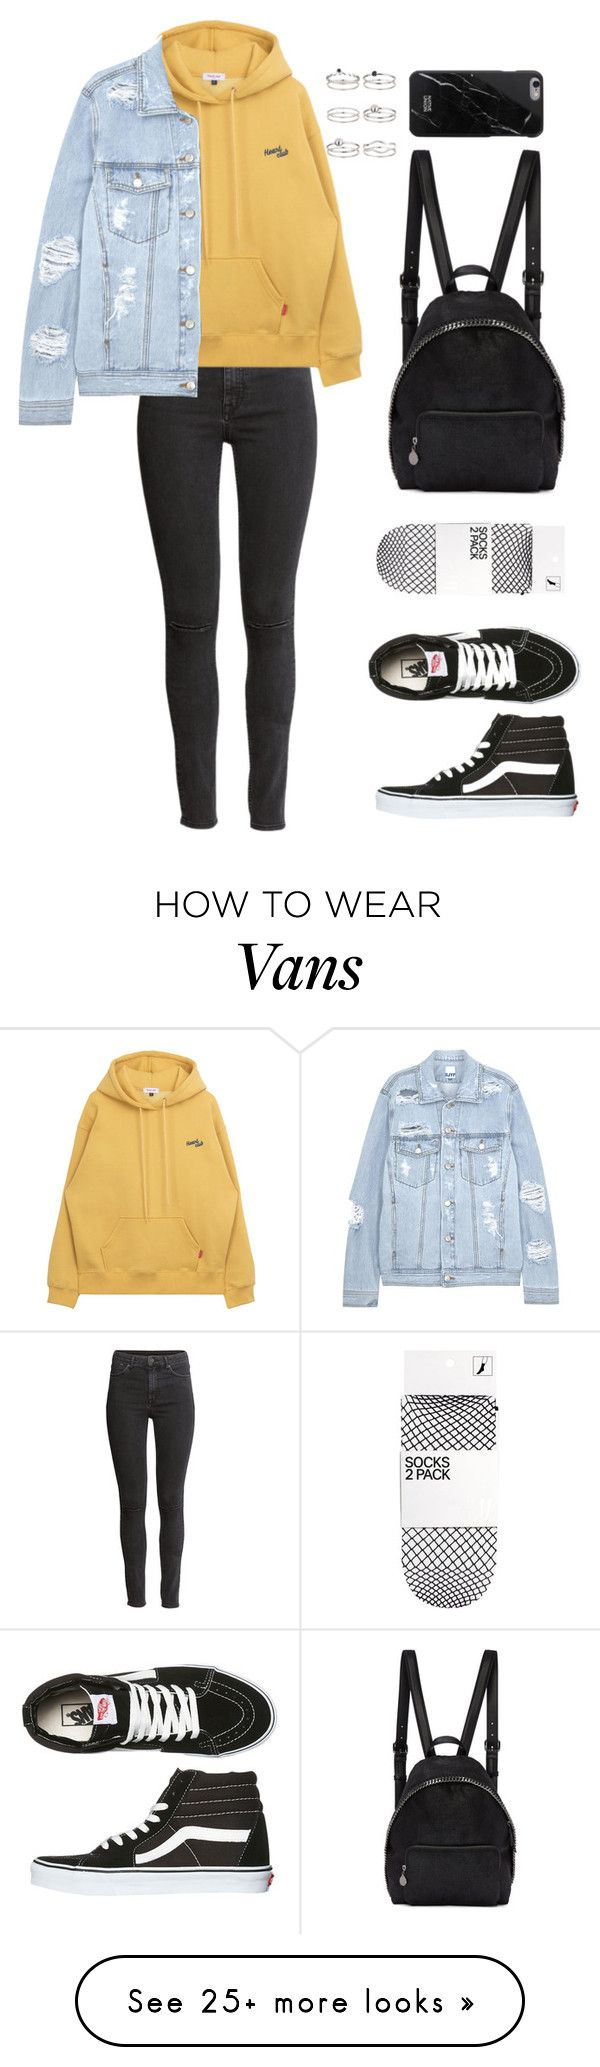 """Untitled #141"" by manerefortis on Polyvore featuring H&M, SJYP, Vans, STELLA McCARTNEY, Native Union and Miss Selfridge"